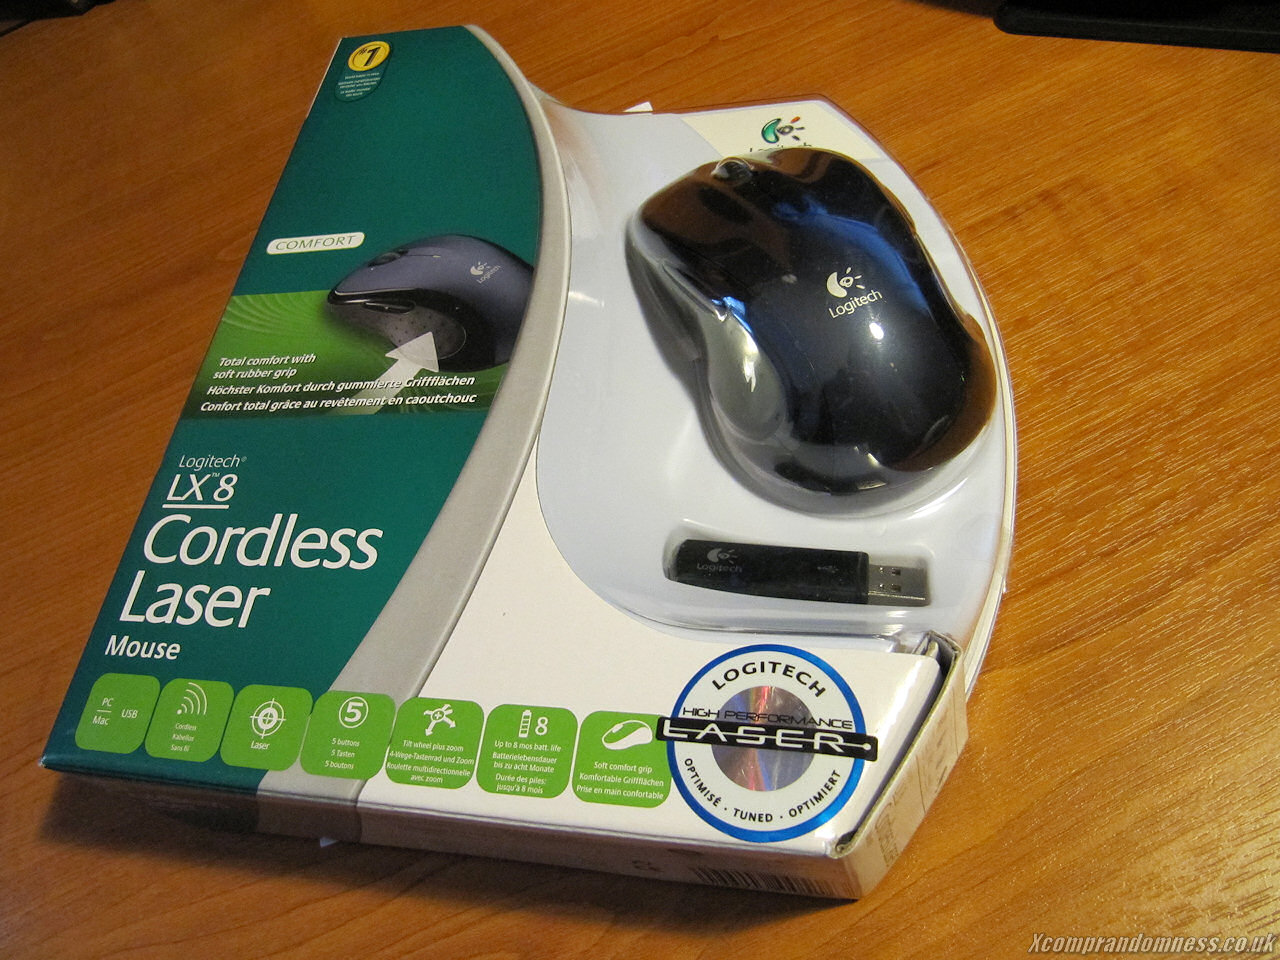 Logitech LX8 Cordless Laser Mouse Review | LH Yeung net Blog